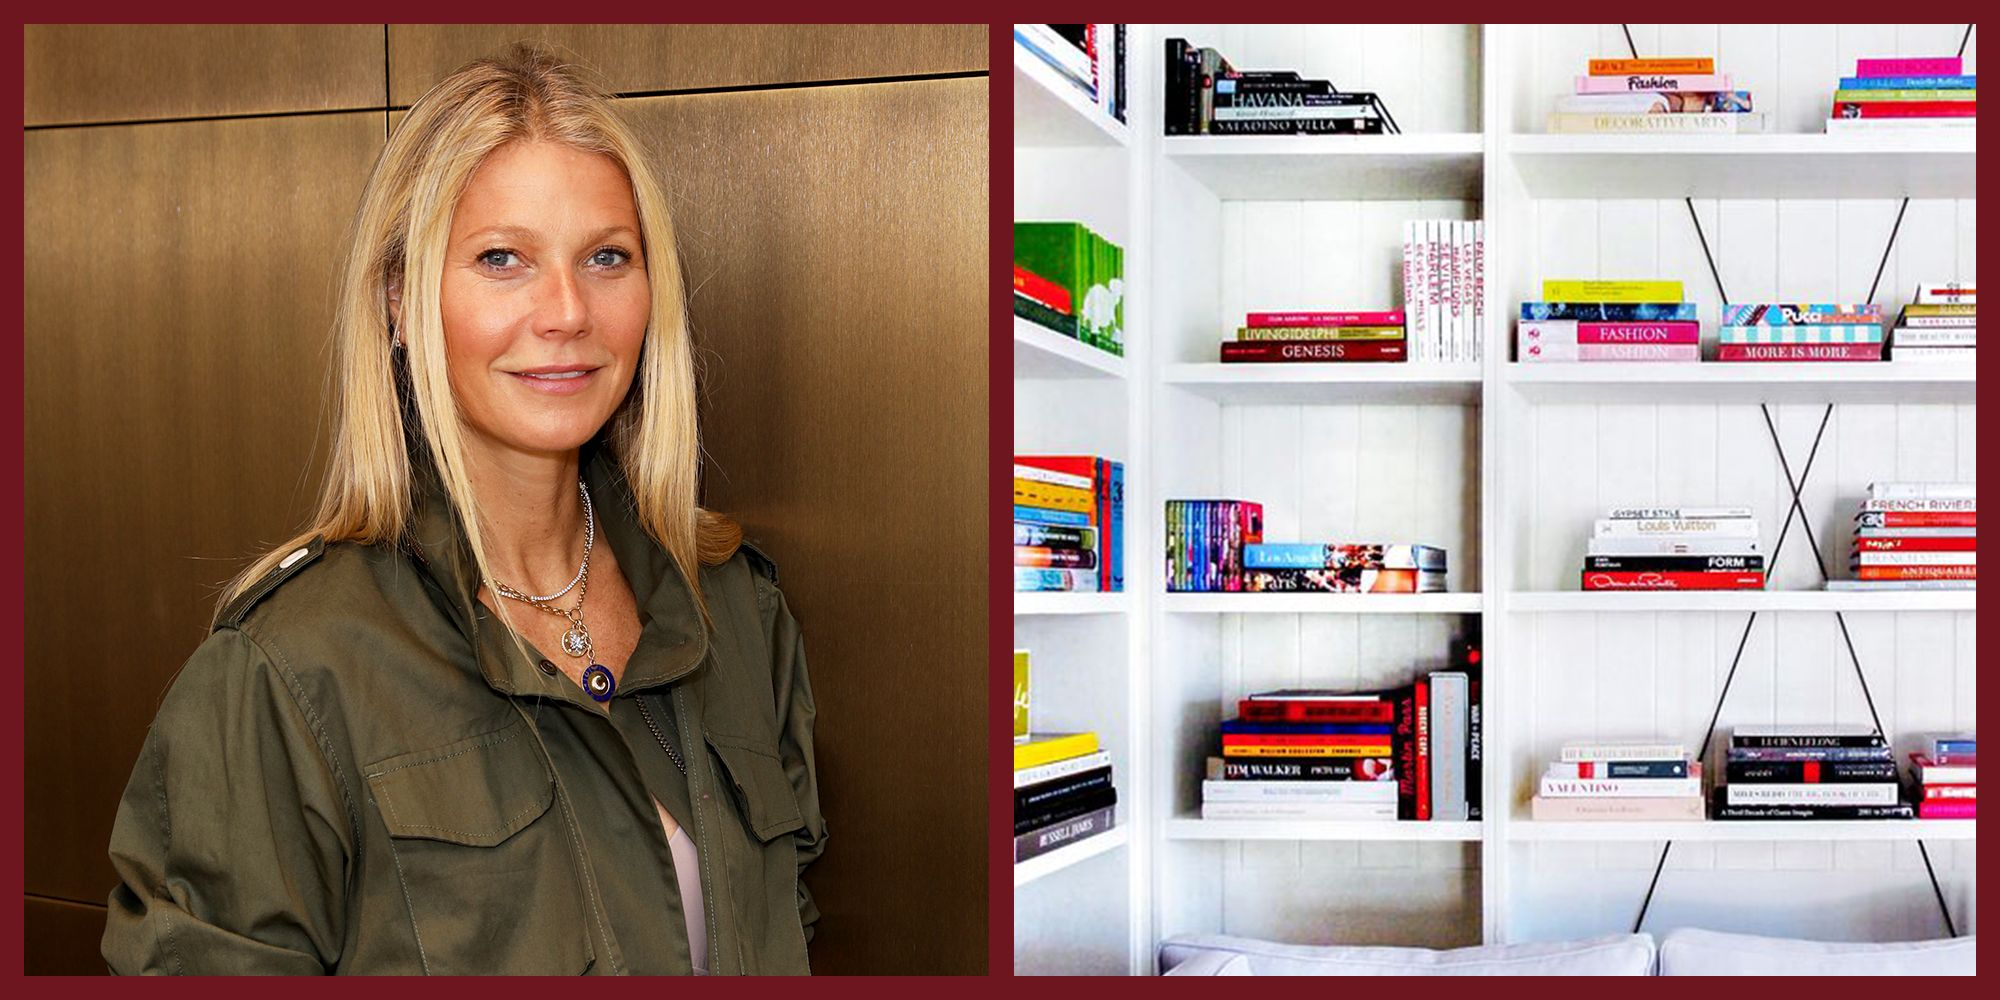 Gwyneth Paltrow Hired a Personal Book Curator—Here's What He Chose For Her Shelves